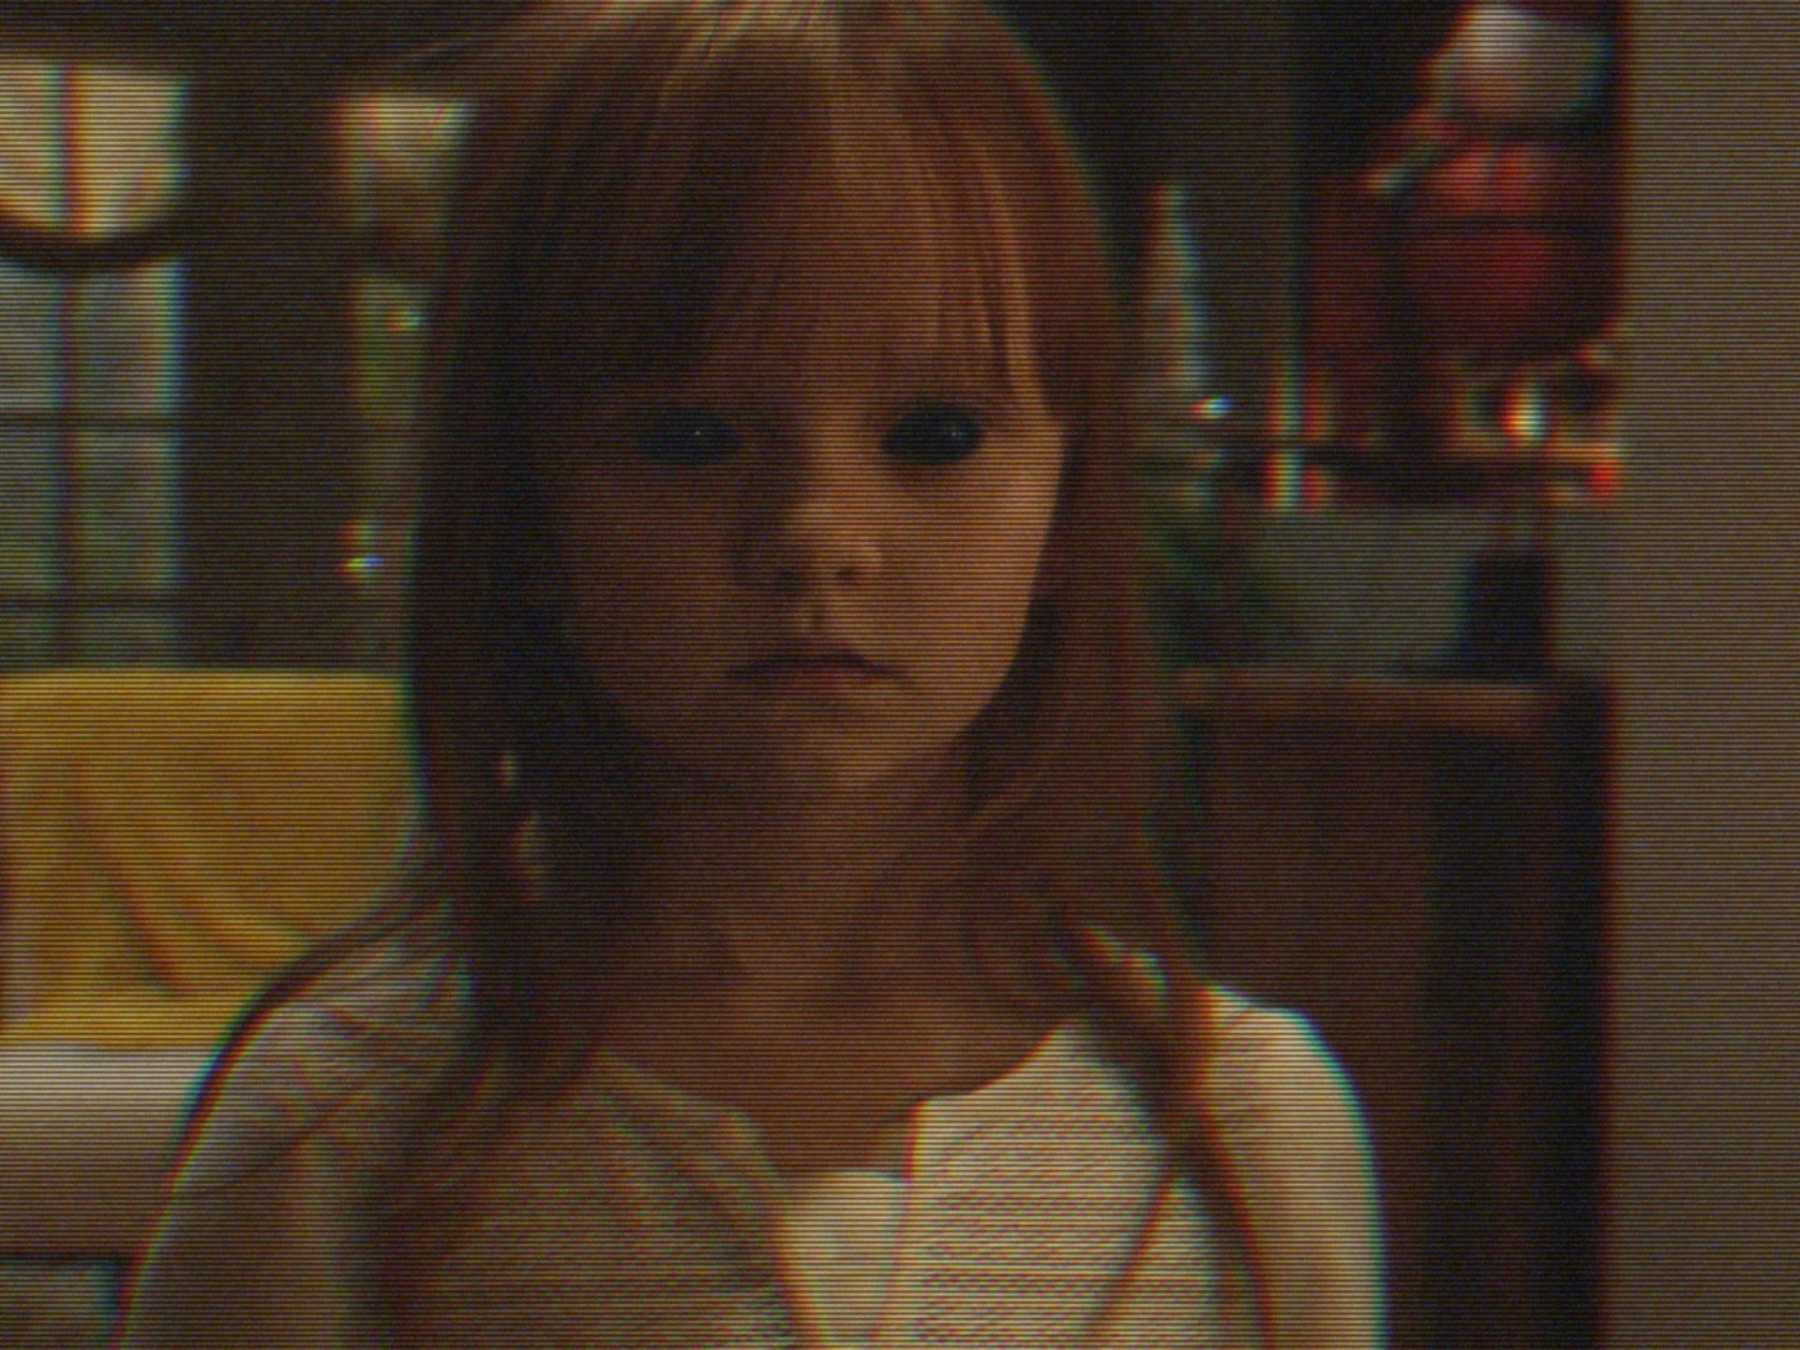 Paranormal Activity: The Ghost Dimension Will Conclude The Franchise | paranormal activity